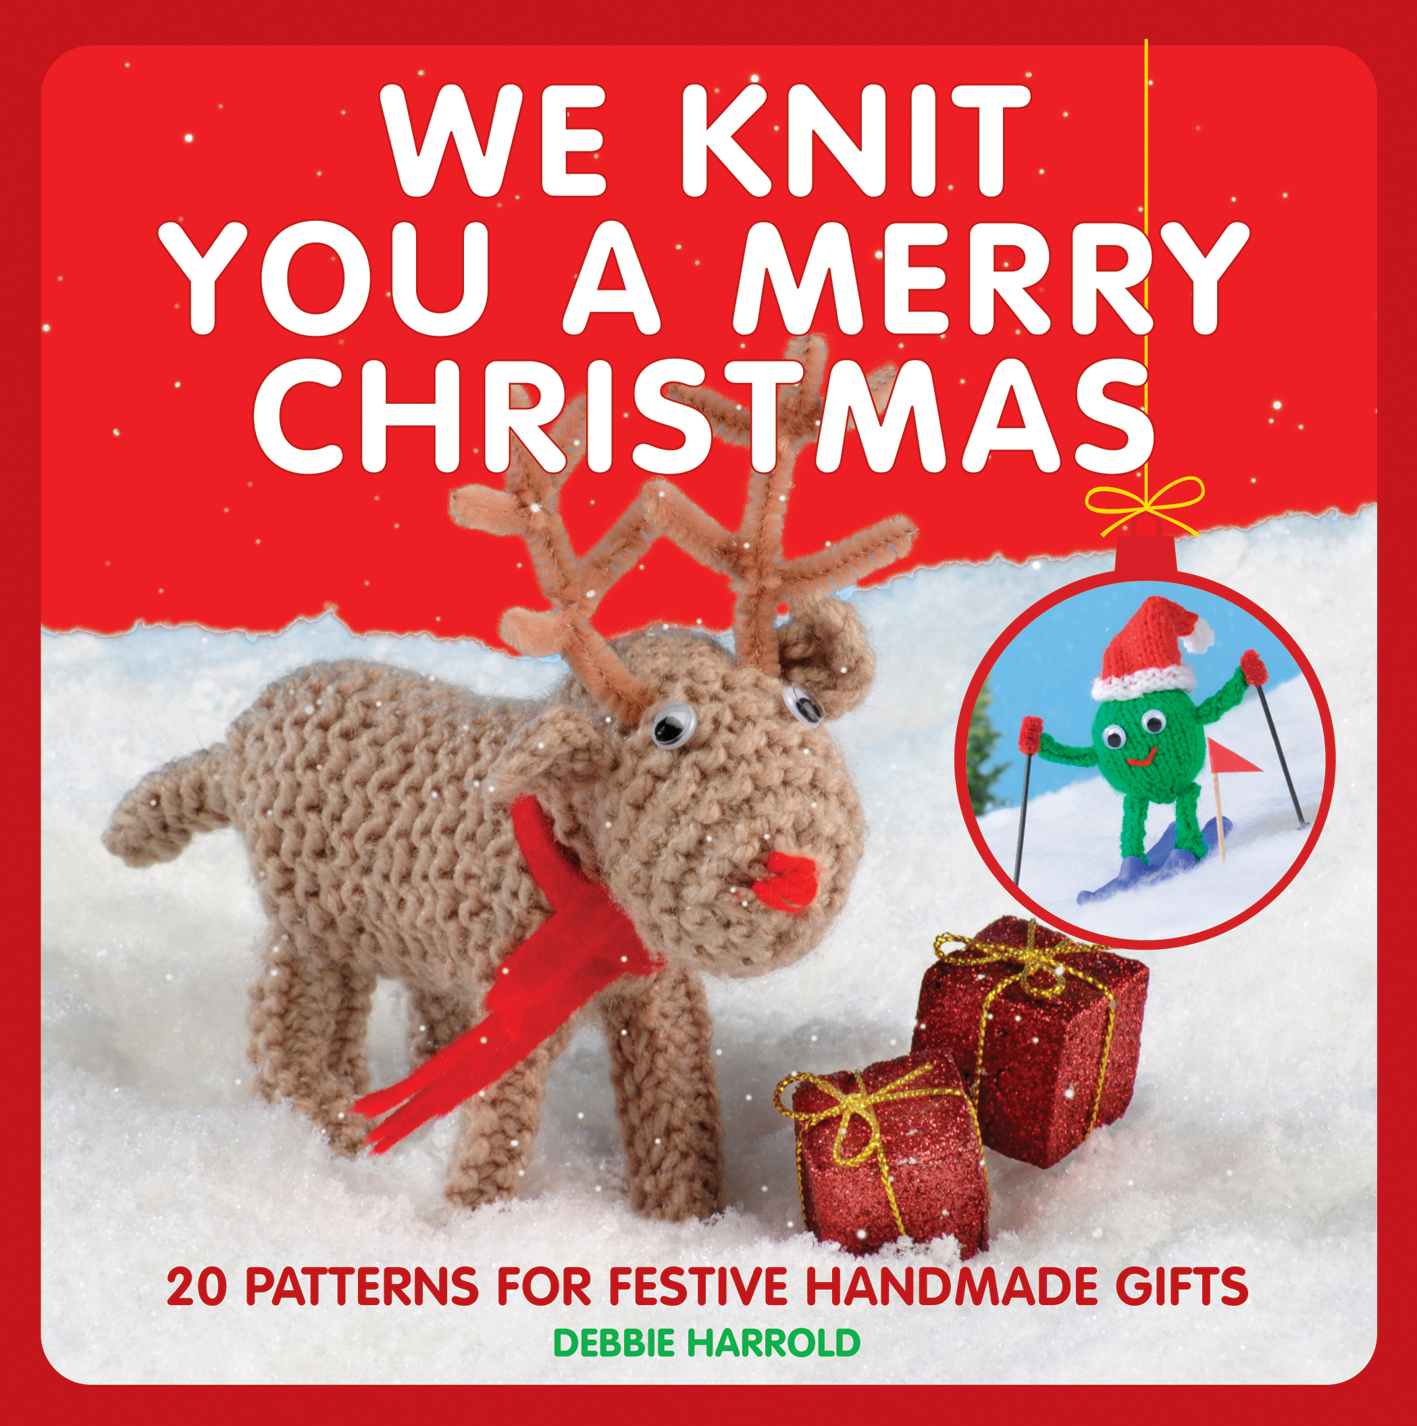 We Knit You a Merry Christmas